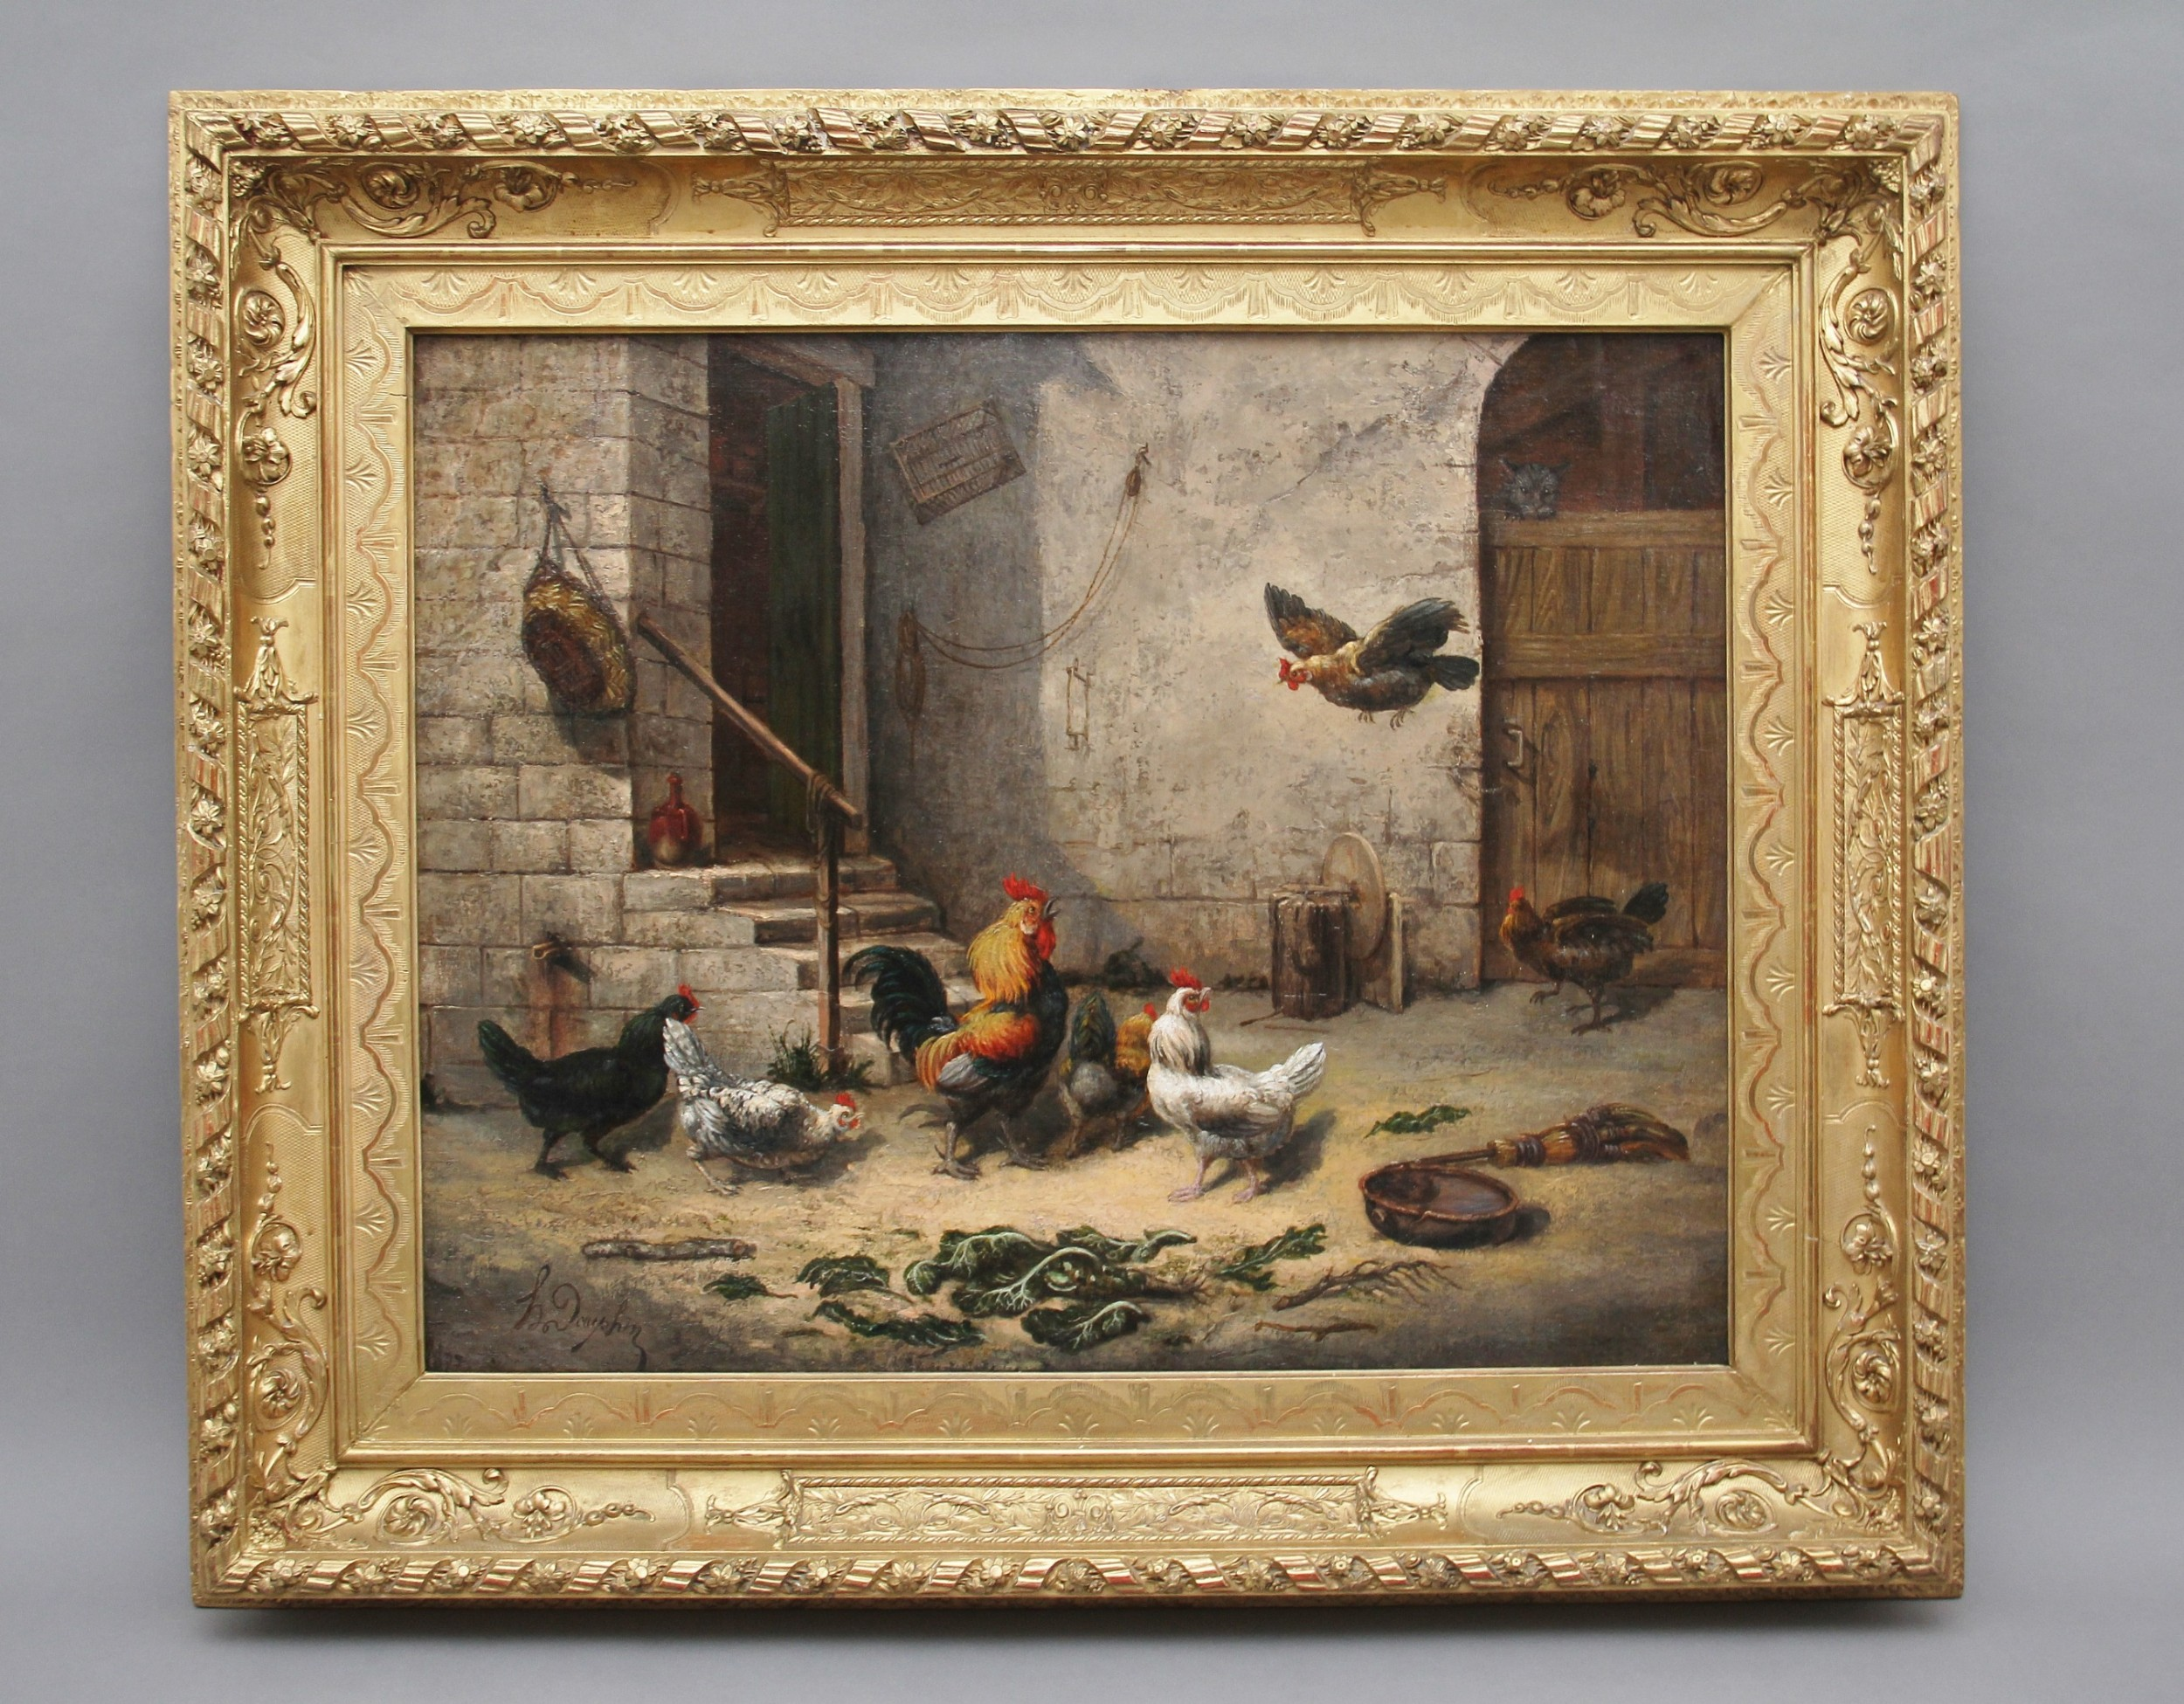 19th century fine quality oil painting